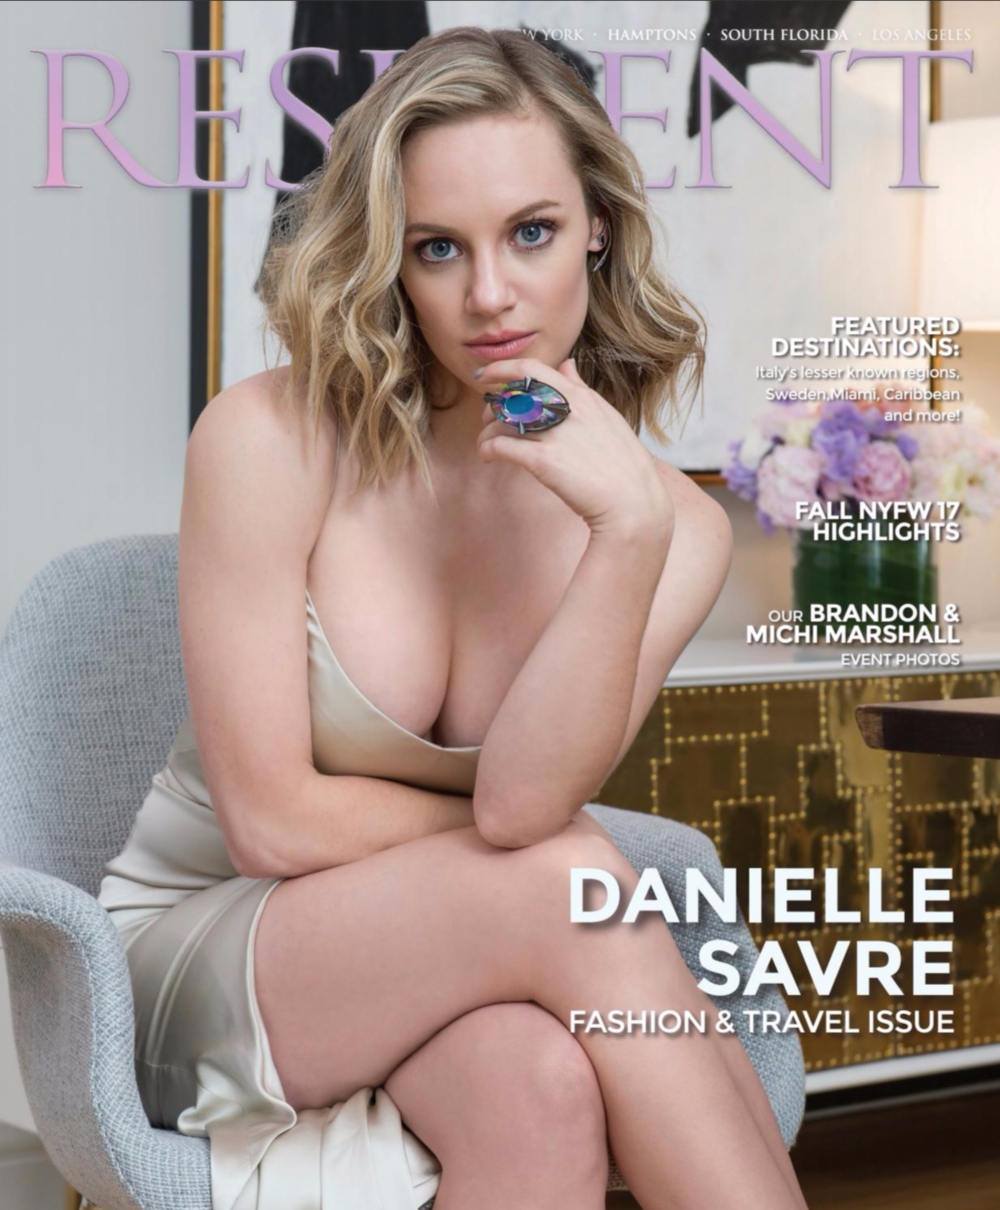 Danielle Savre by photographer Andrew Werner, Resident Magazine March 2017 - Cover.png